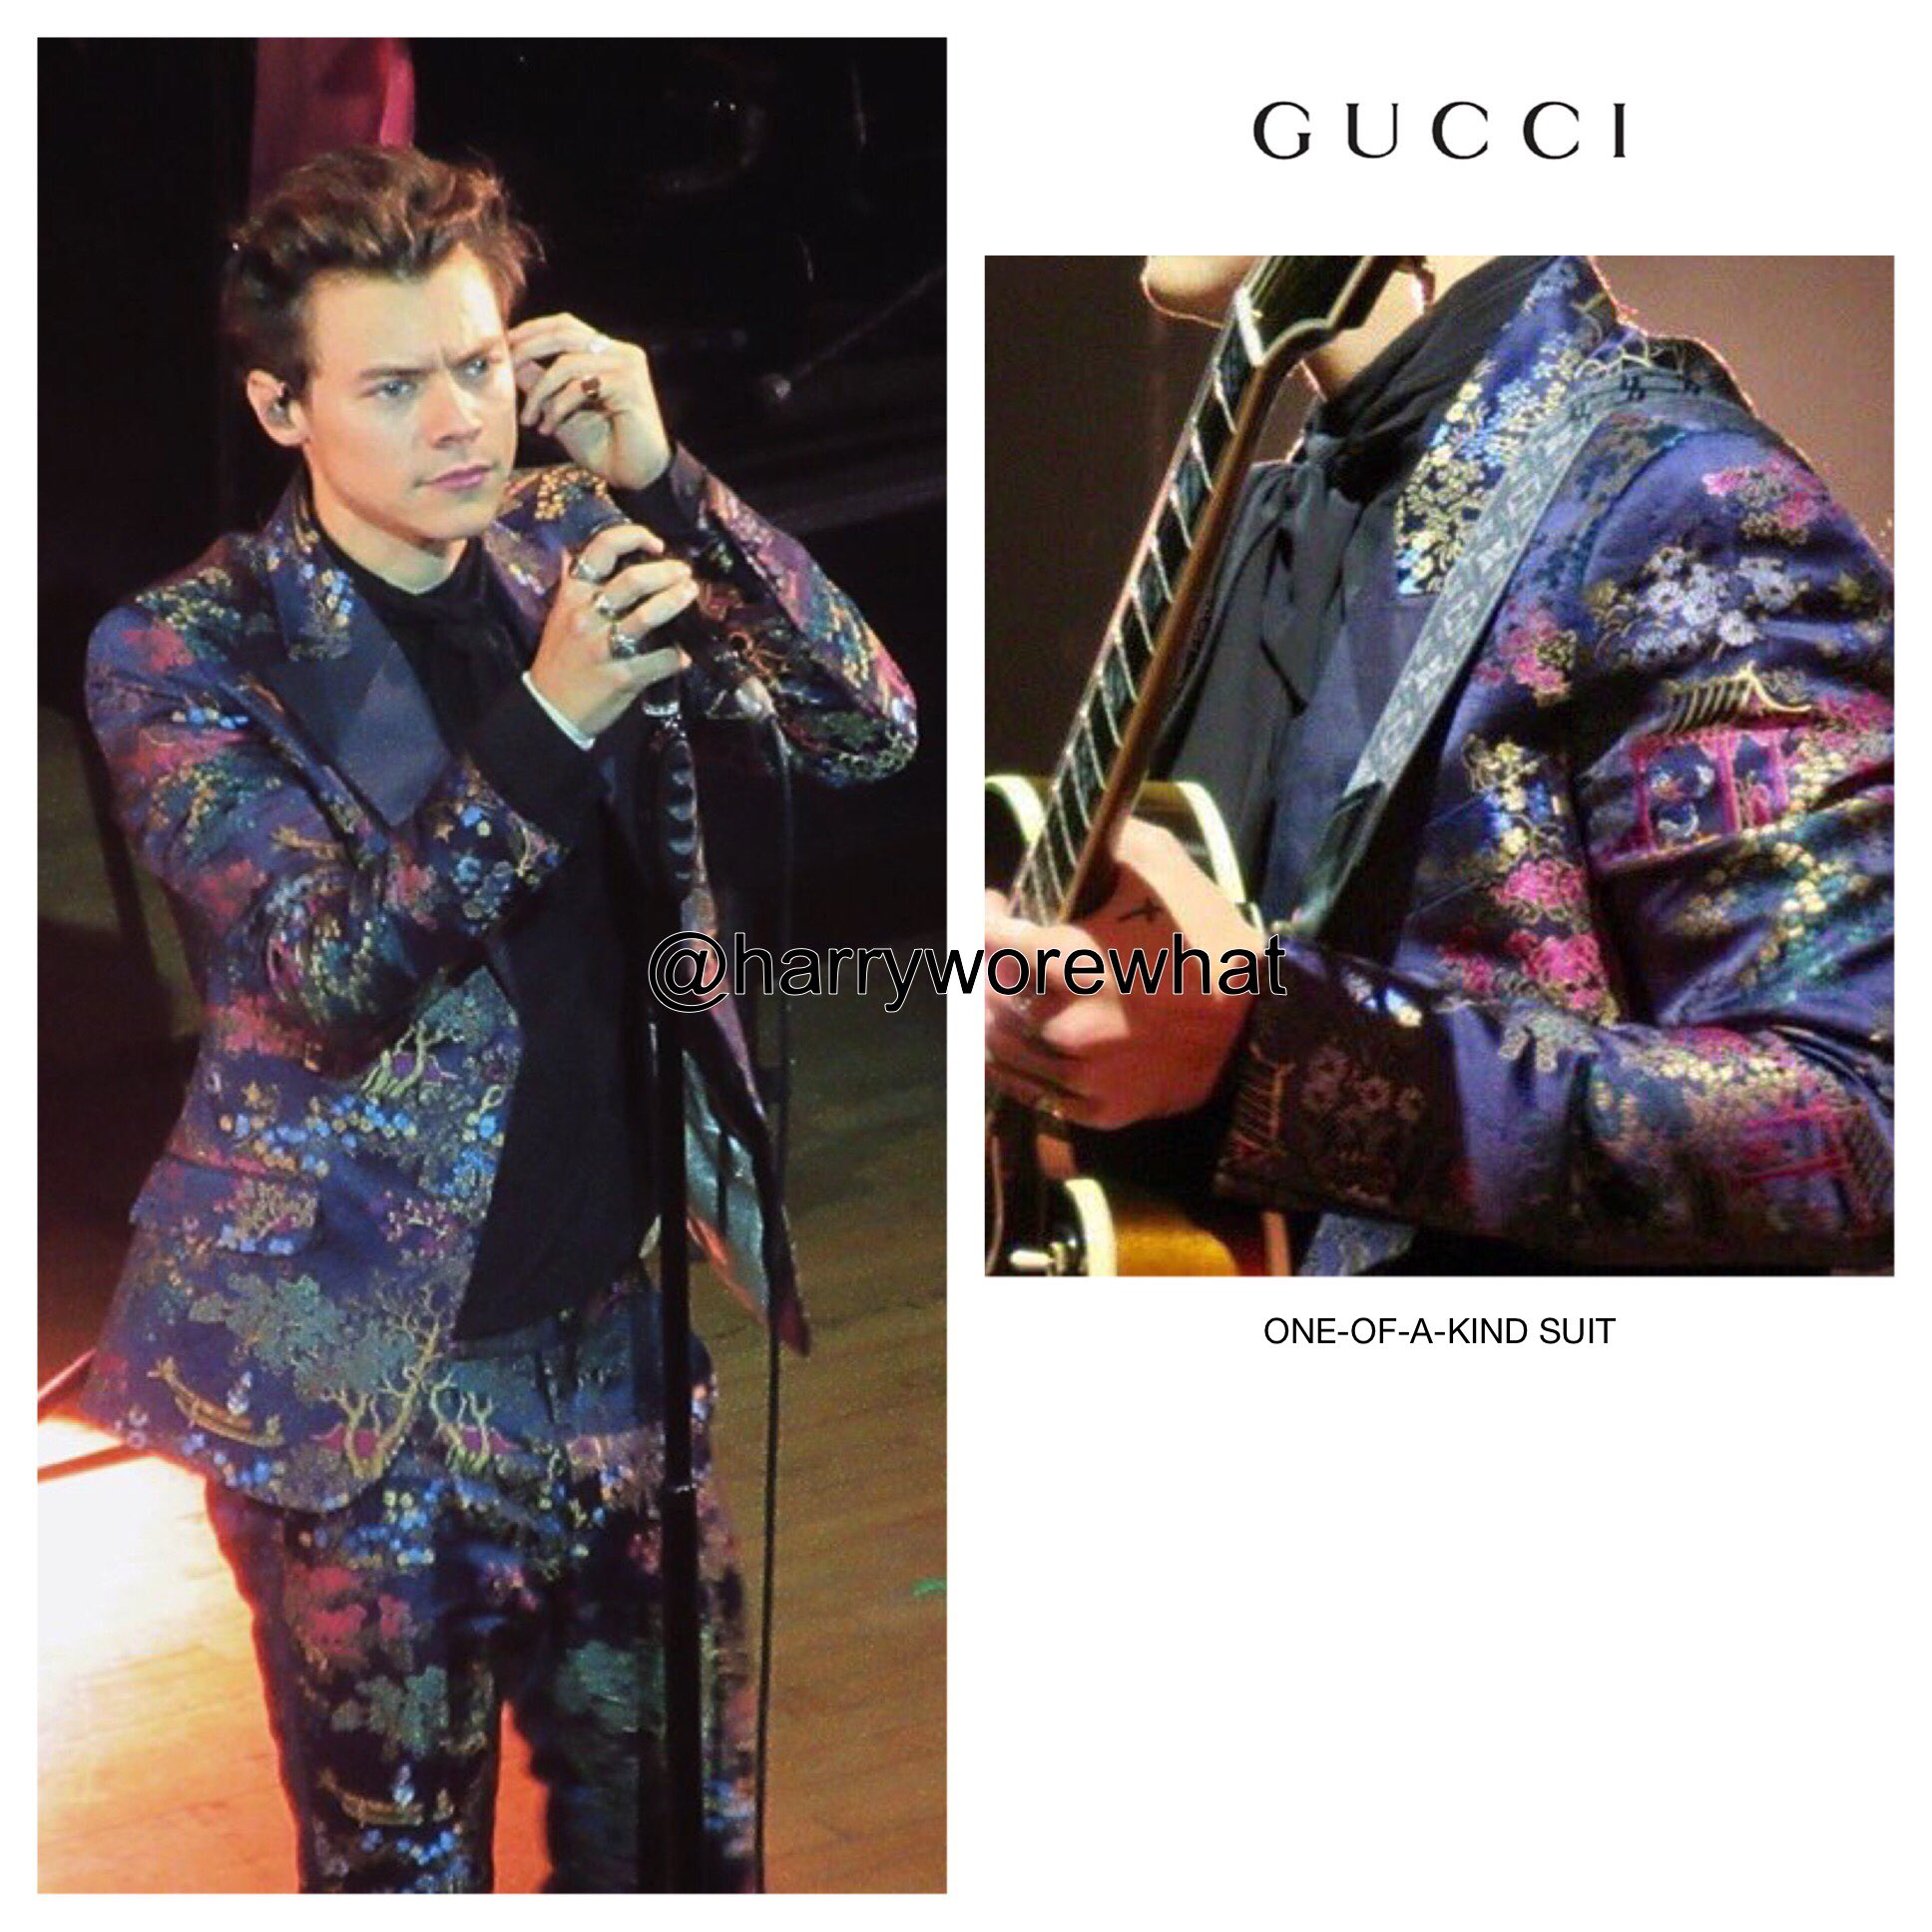 Harry Wore What on Twitter u0026quot;Harry wore a one-of-a-kind #Gucci suit while performing @MasseyHall ...